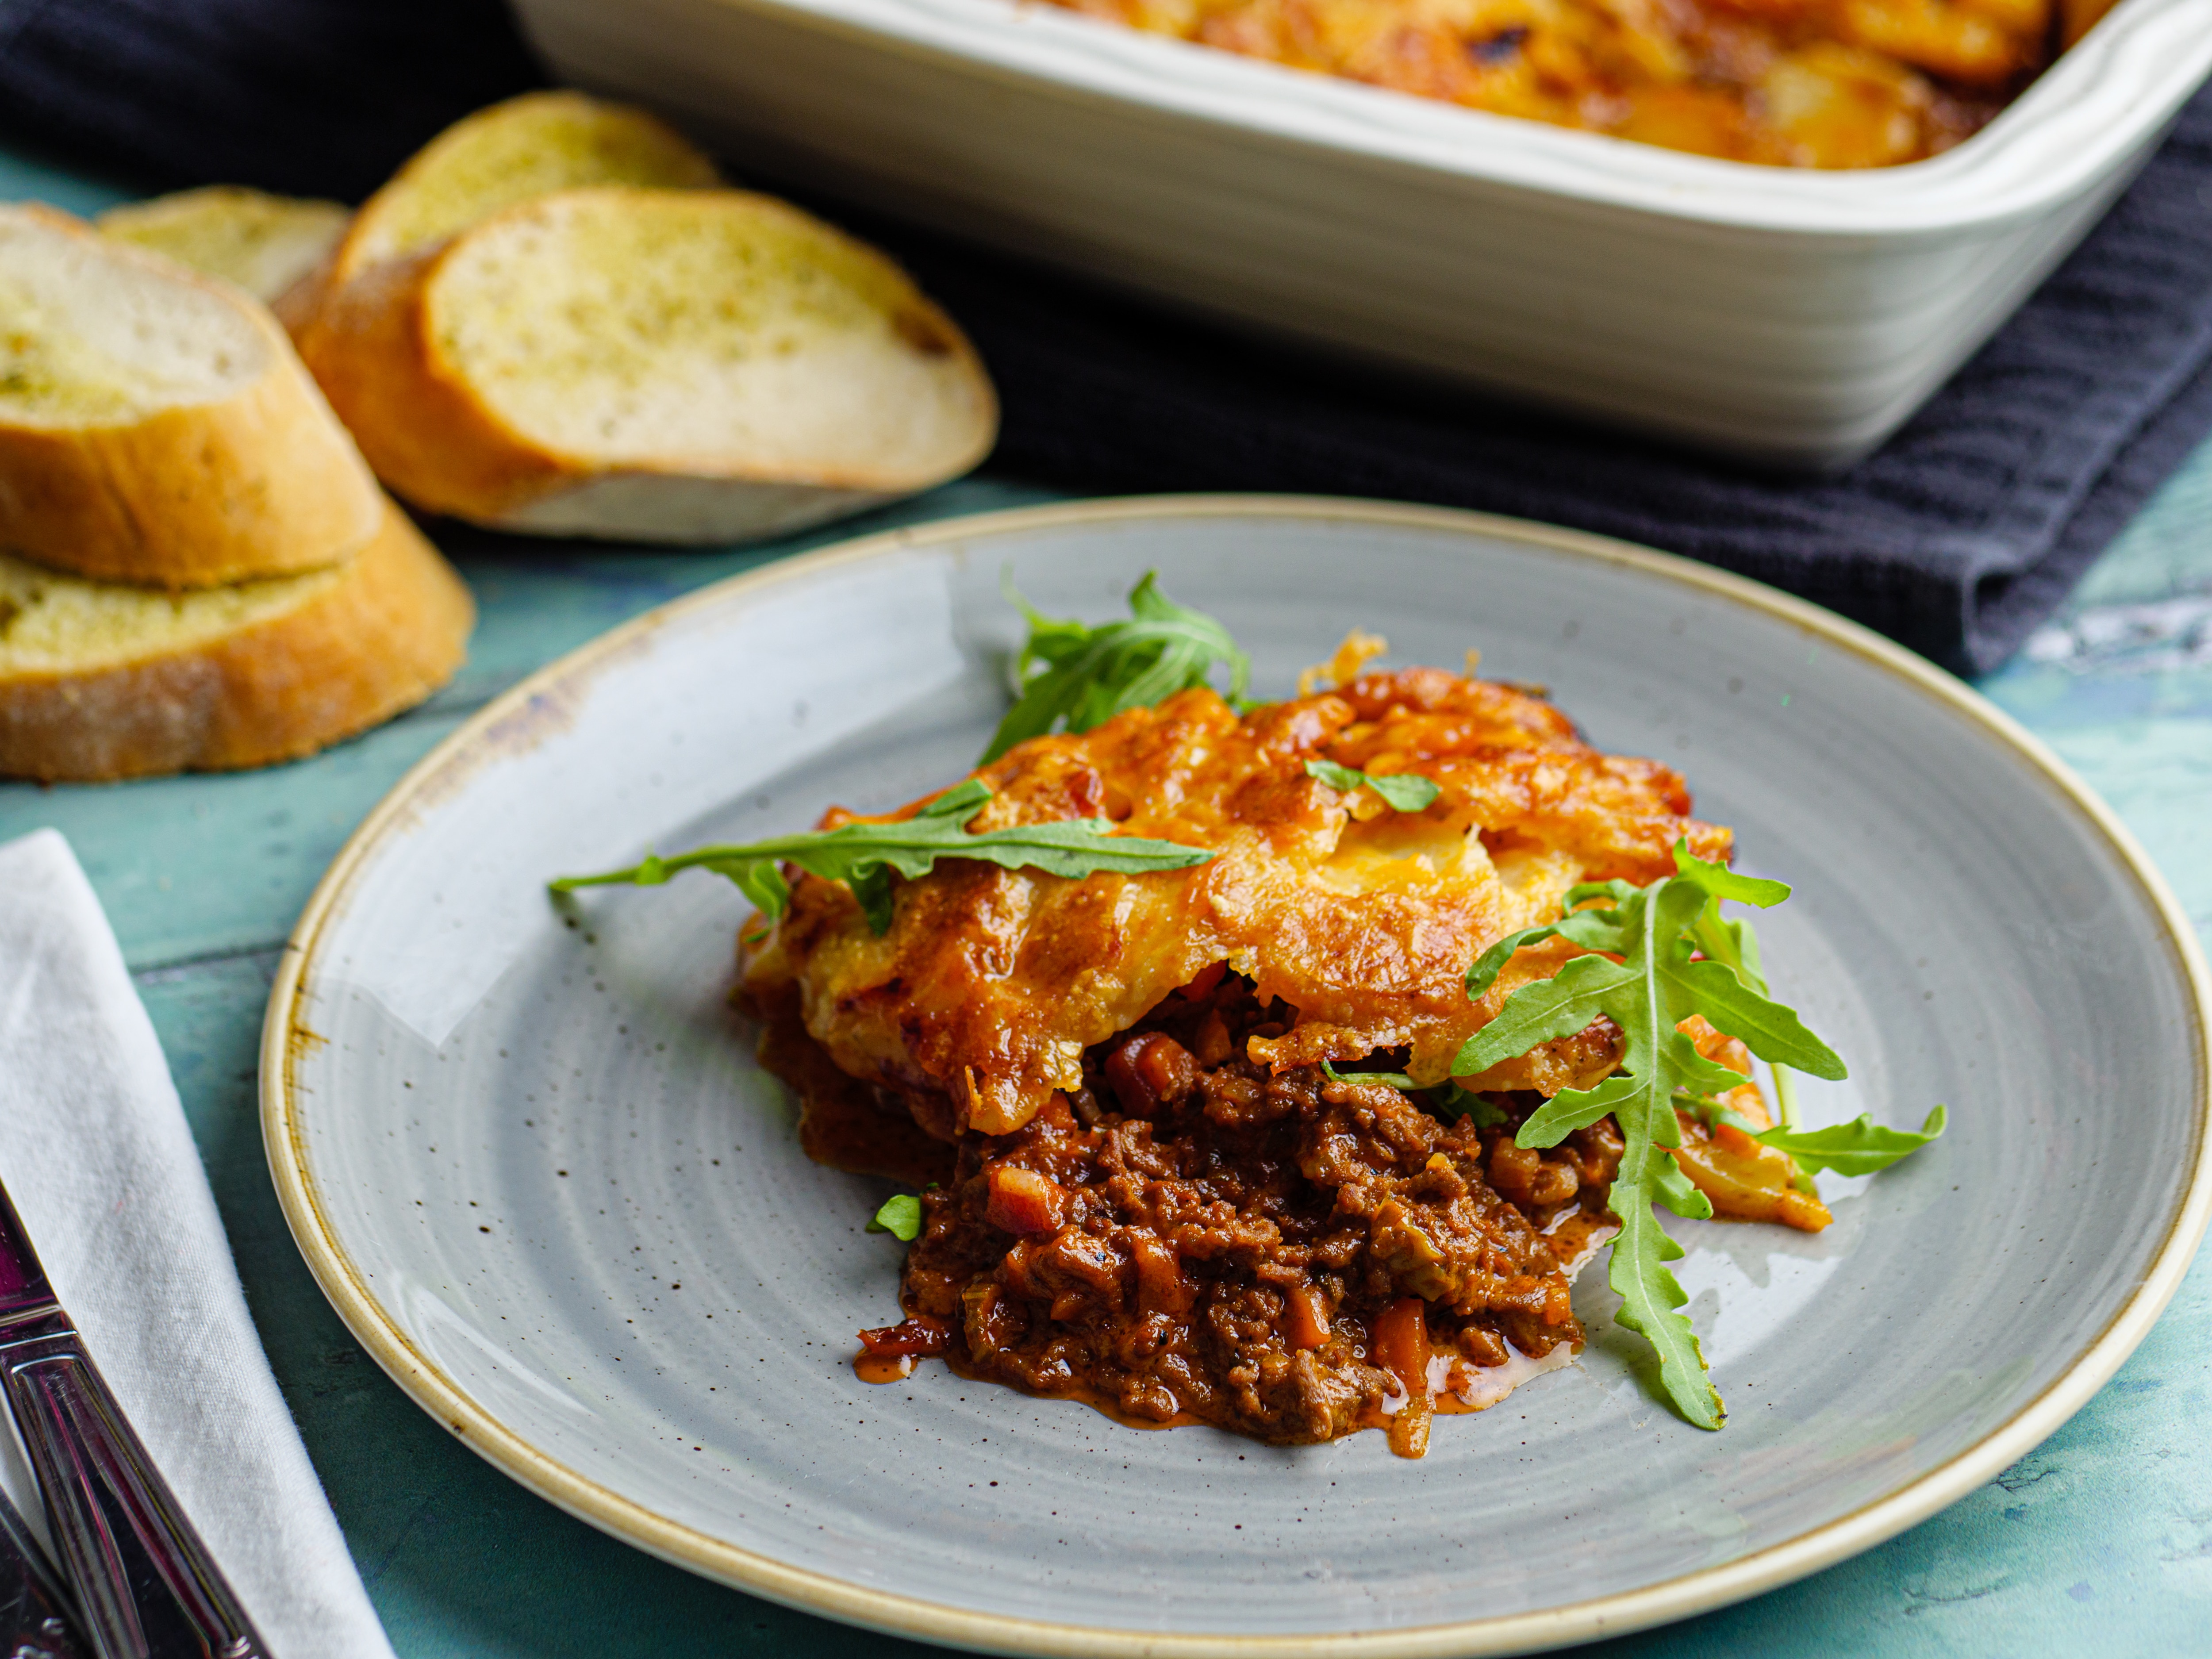 Creamy Minced Beef With Cheesy Spuds